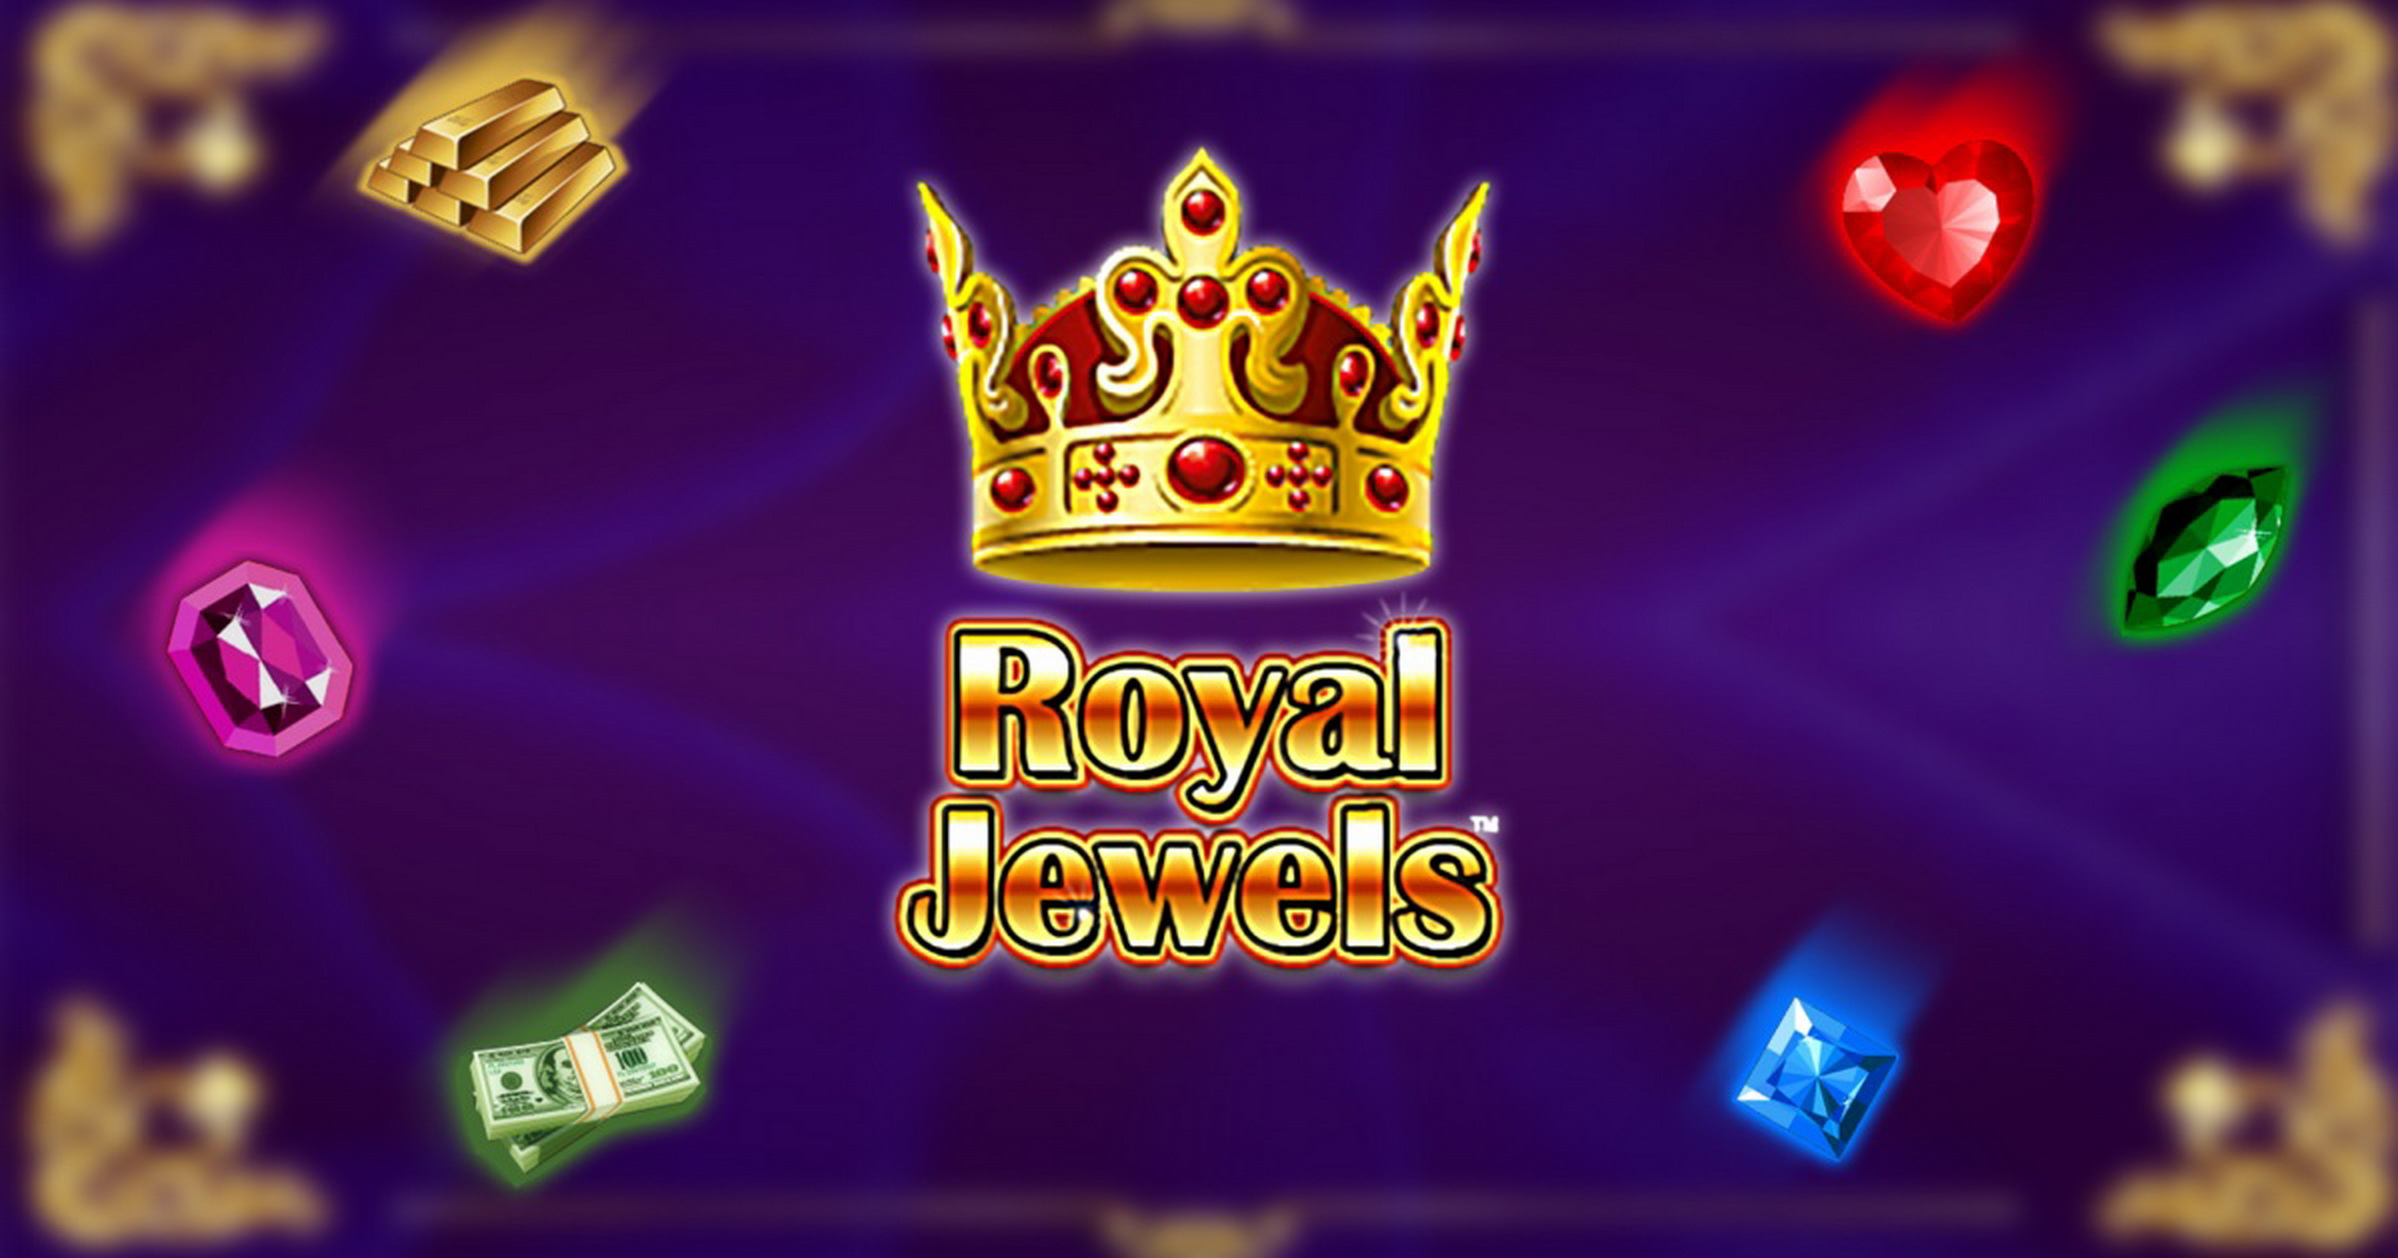 The Royal Jewels (DLV) Online Slot Demo Game by DLV